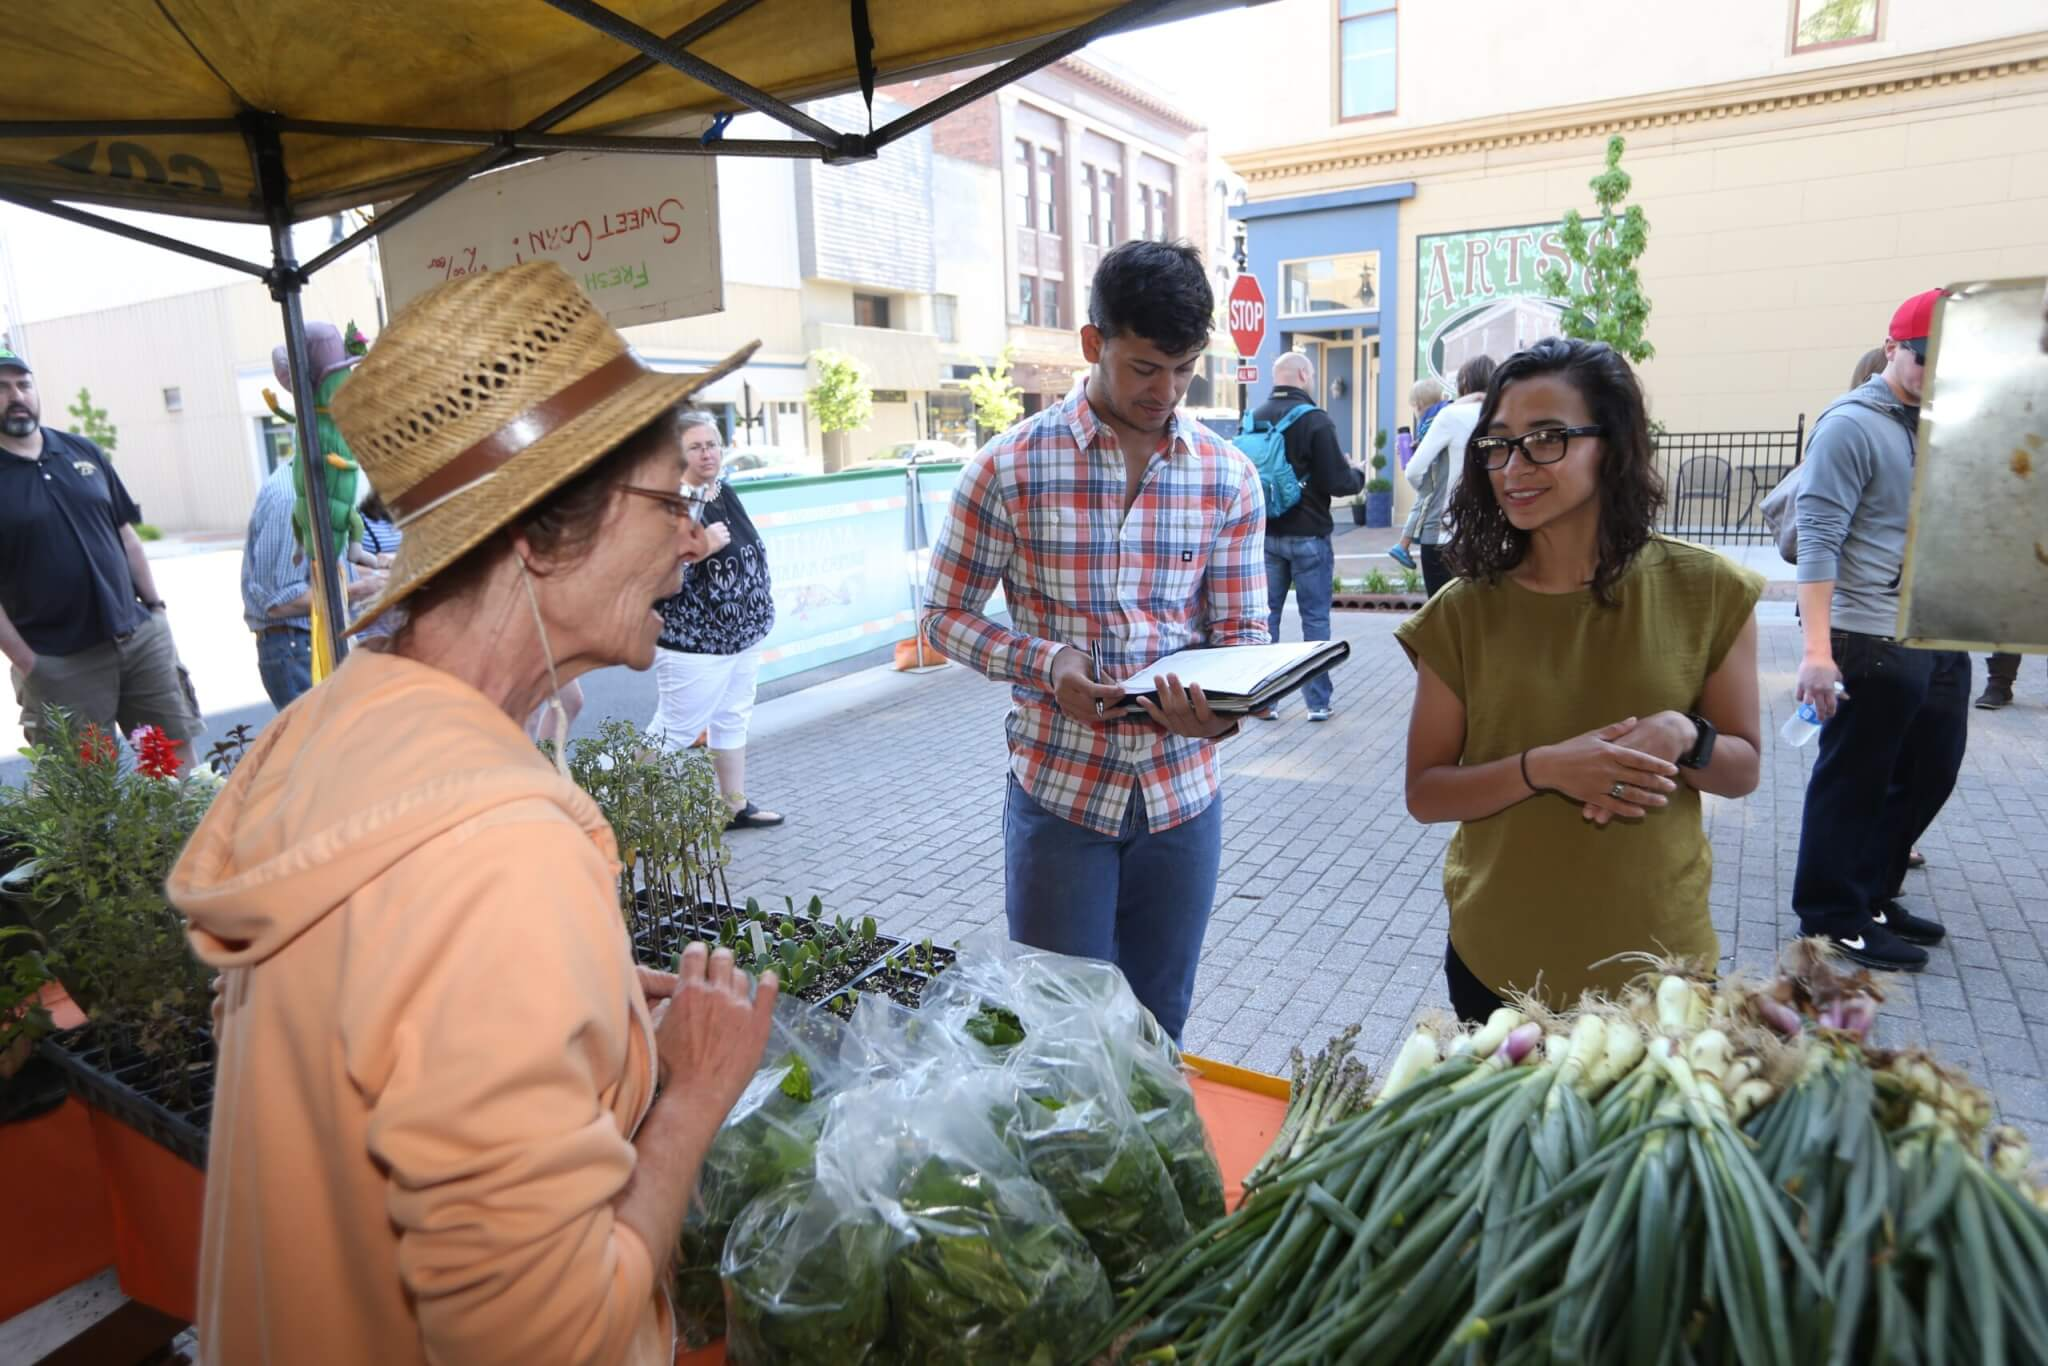 Ariana Torres speaks with a farmer at the Lafayette Farmers Market pre-COVID-19.